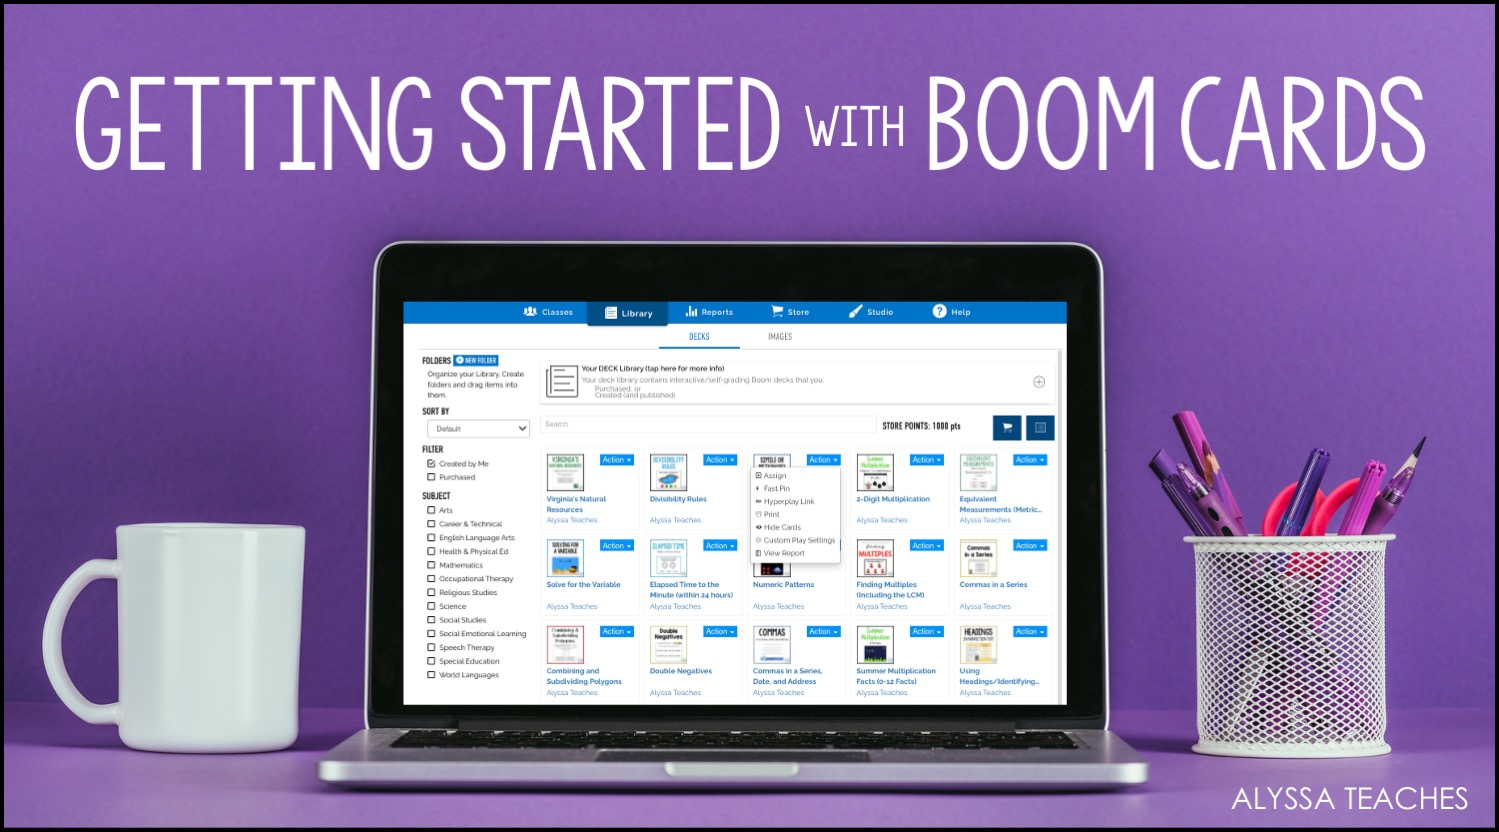 This tutorial will help you get started using Boom Learning digital task cards with your elementary students